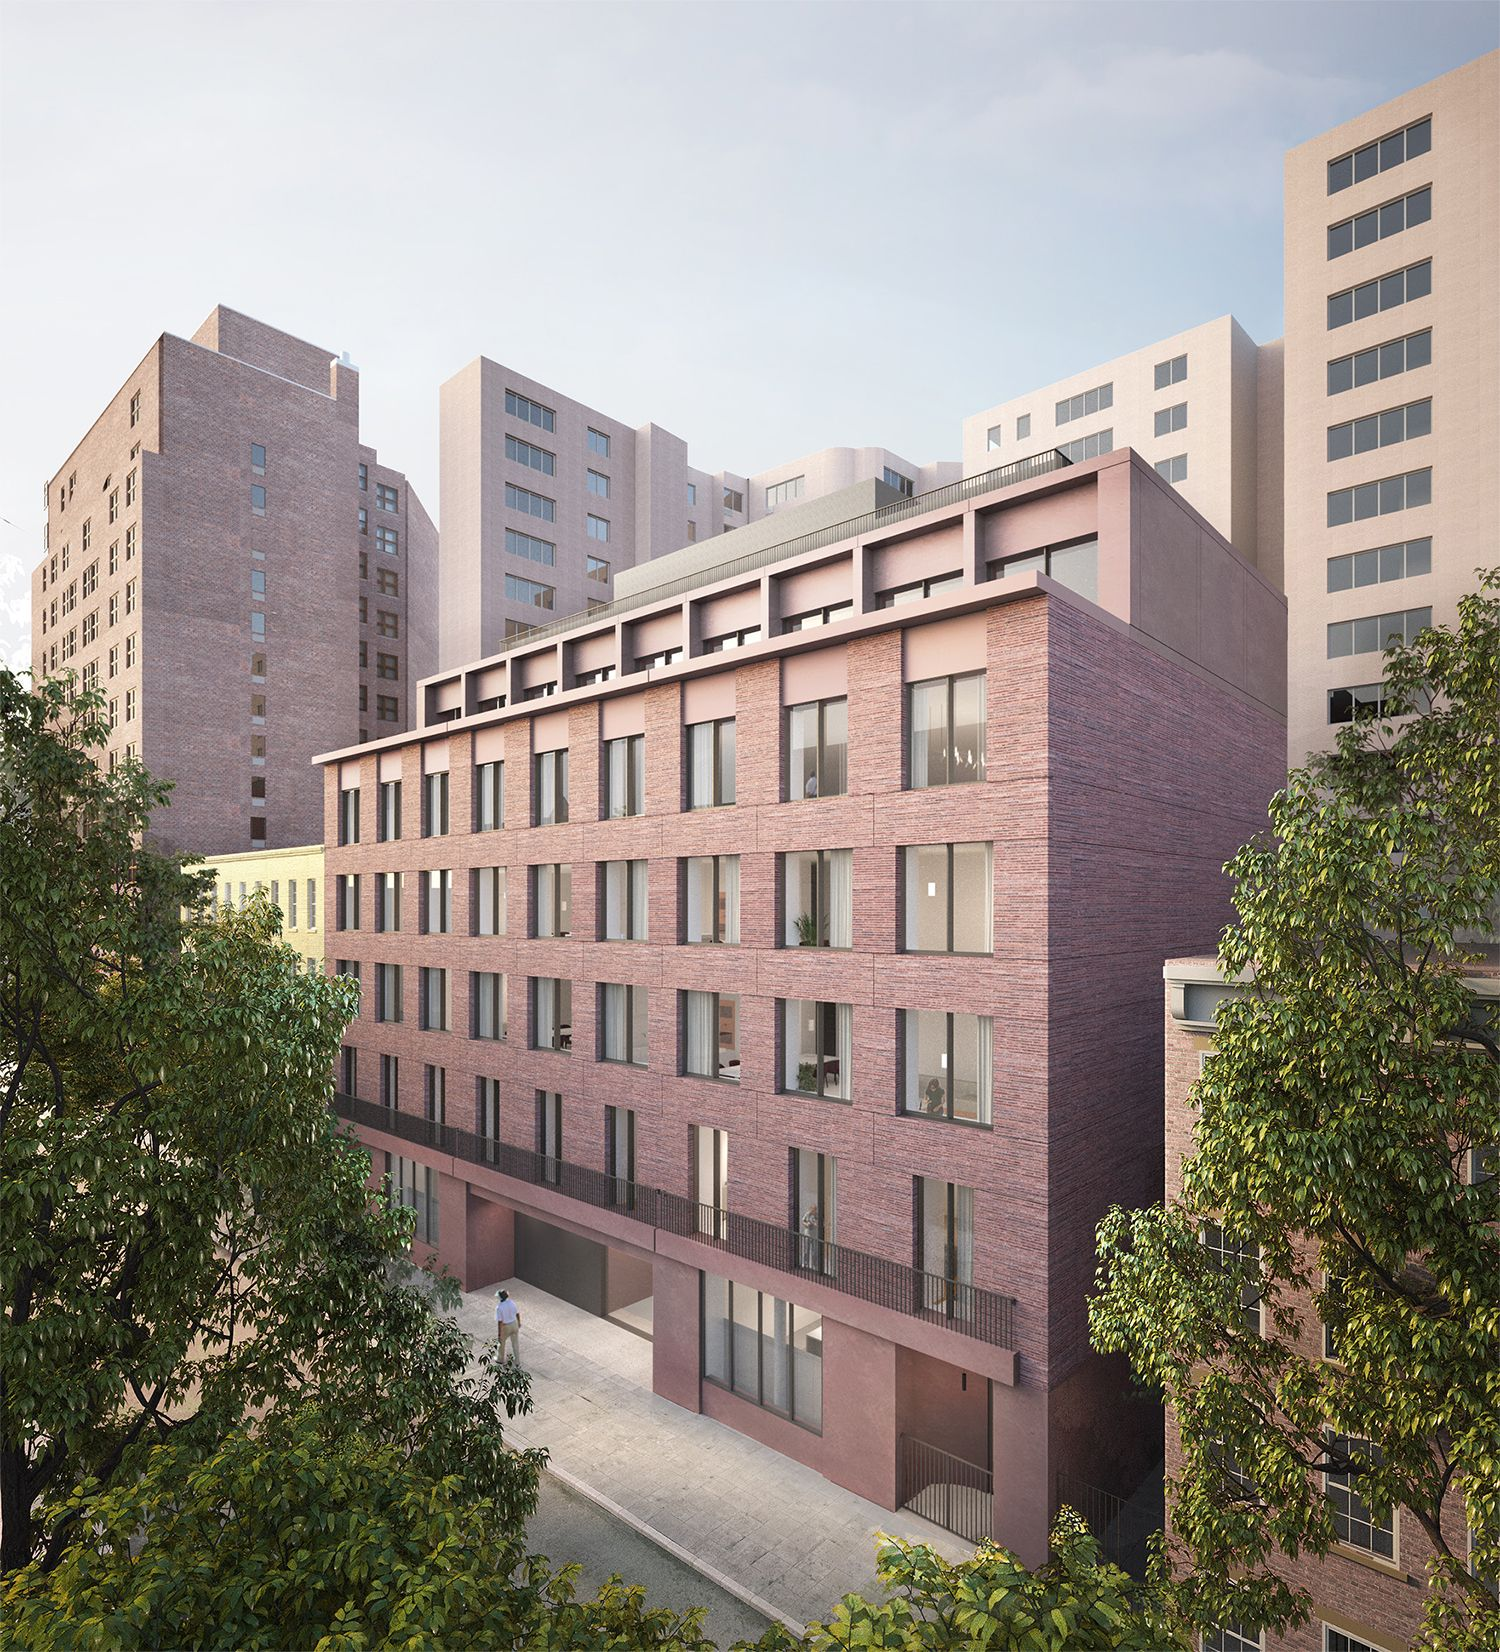 David Chipperfield's Jane Street condo is rejected by the